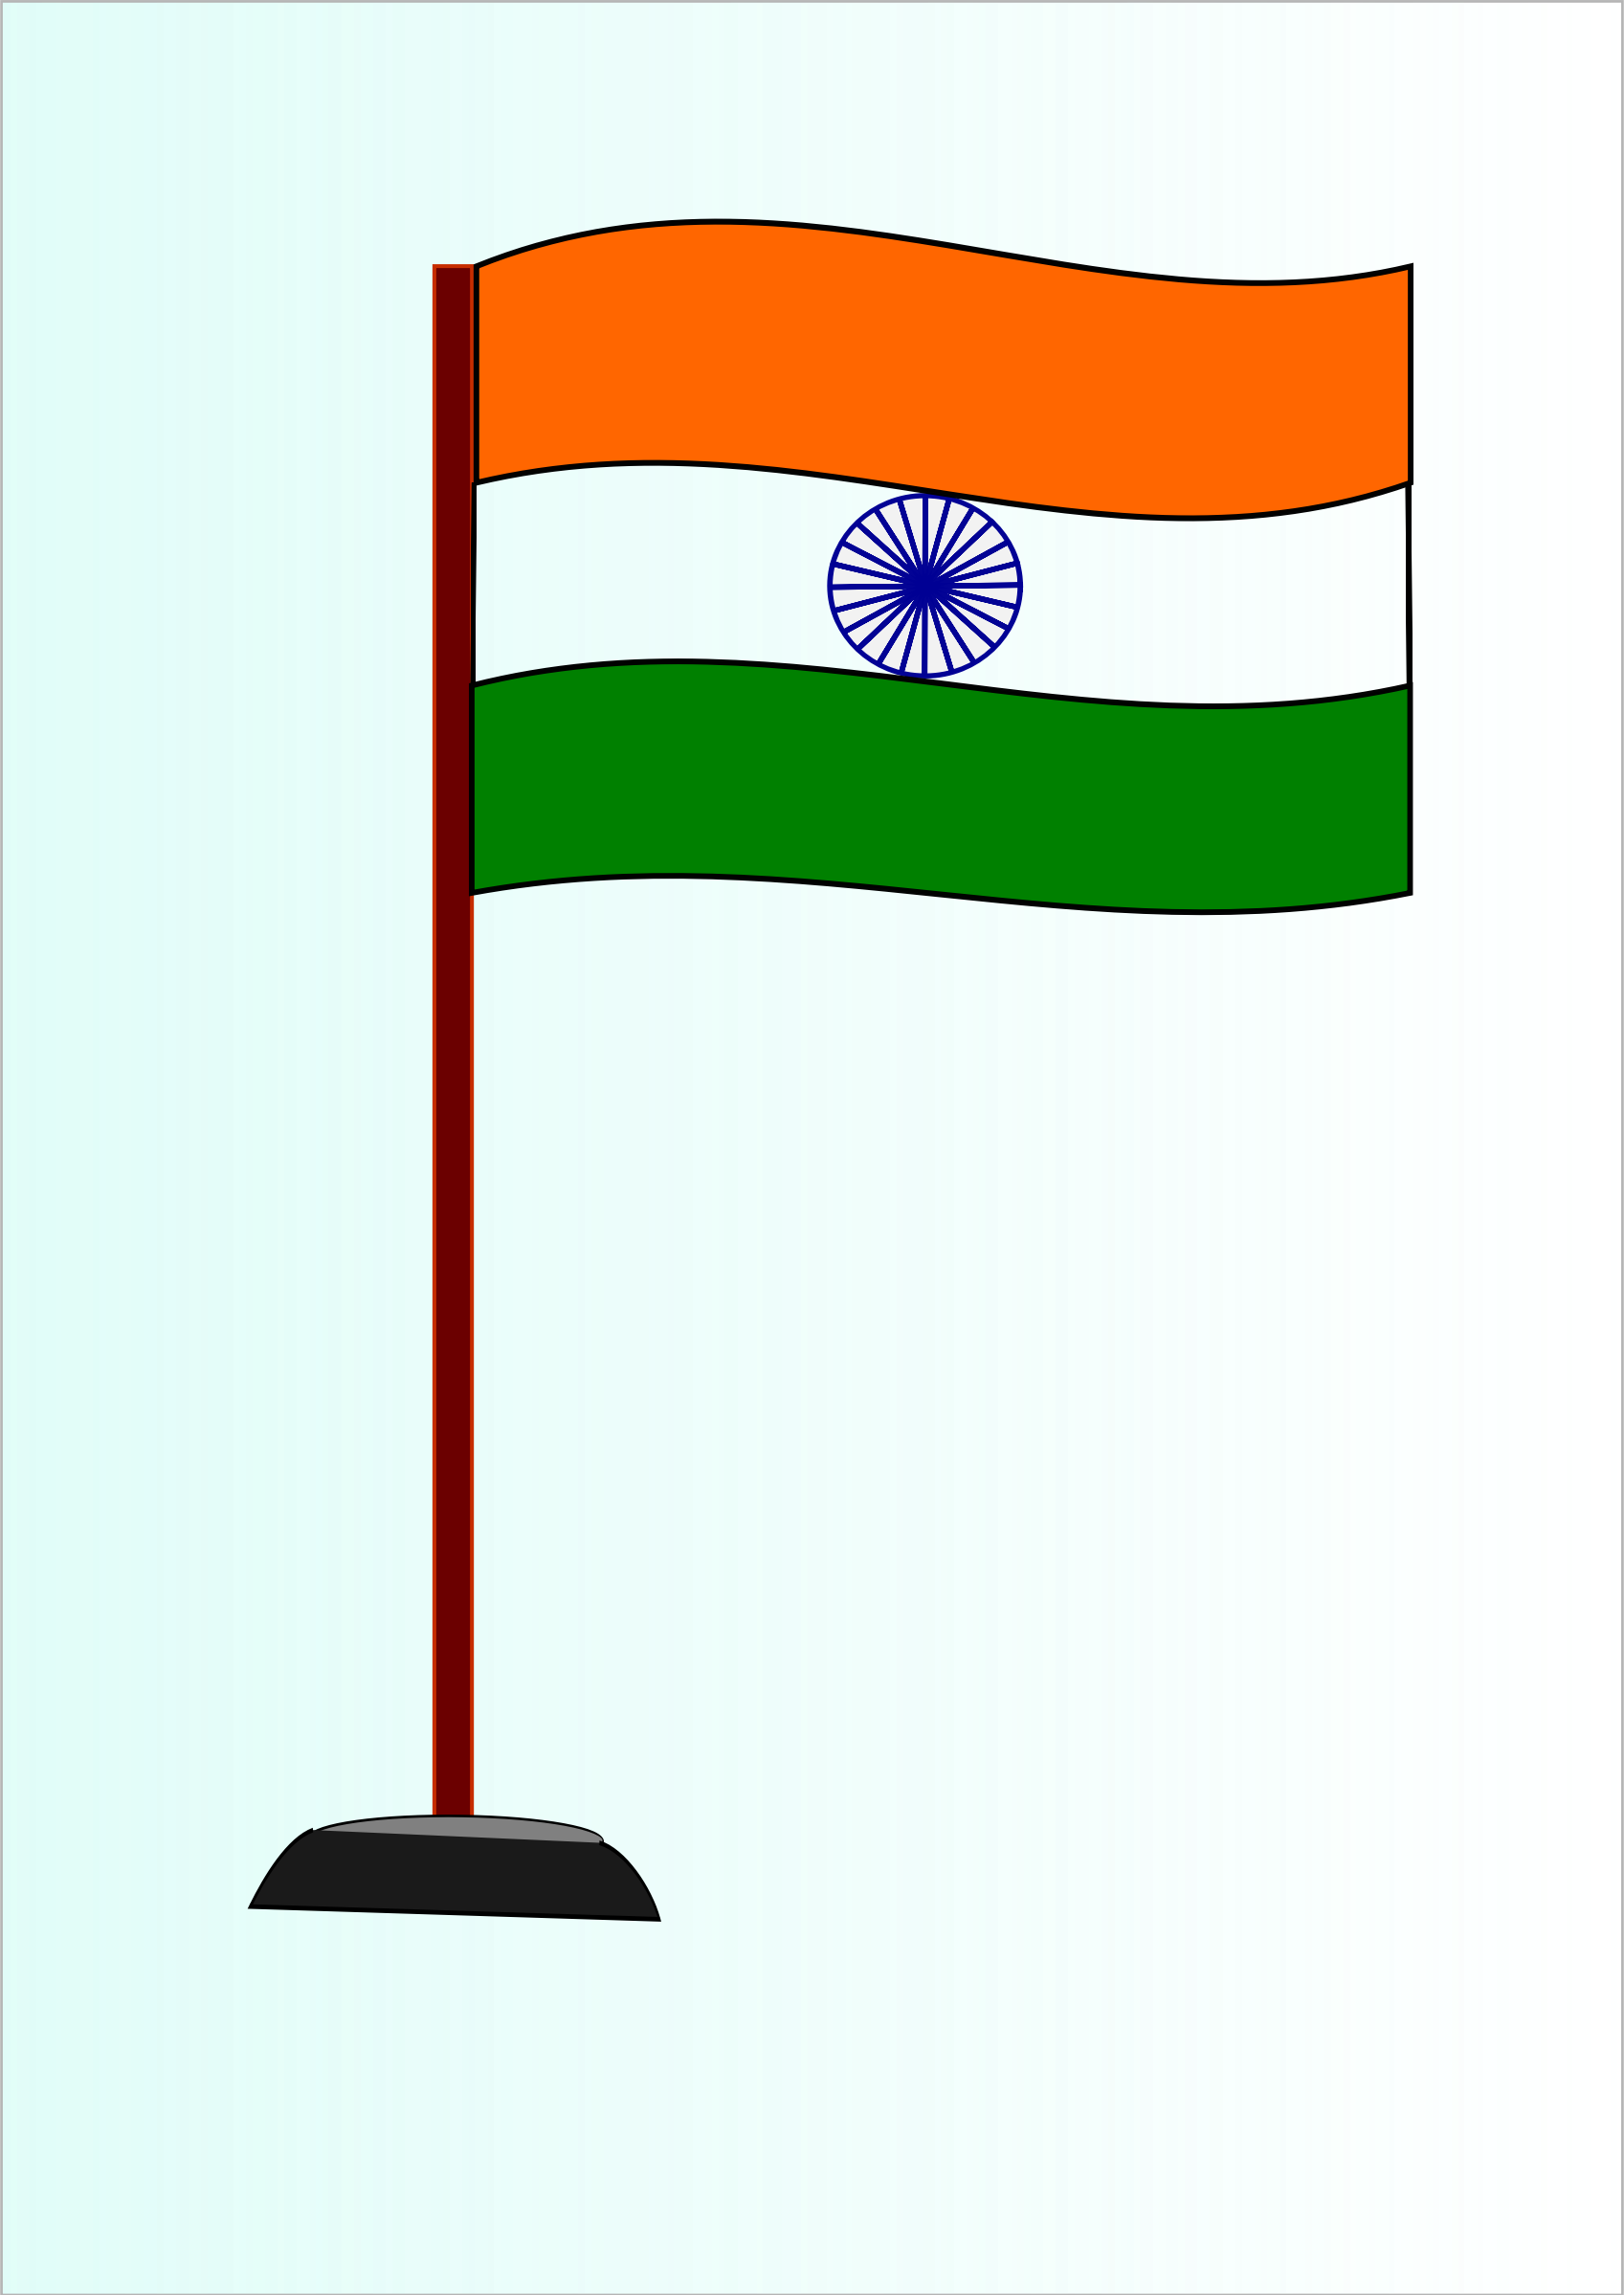 Small clipart indian Clipart Indian National Indian Flag